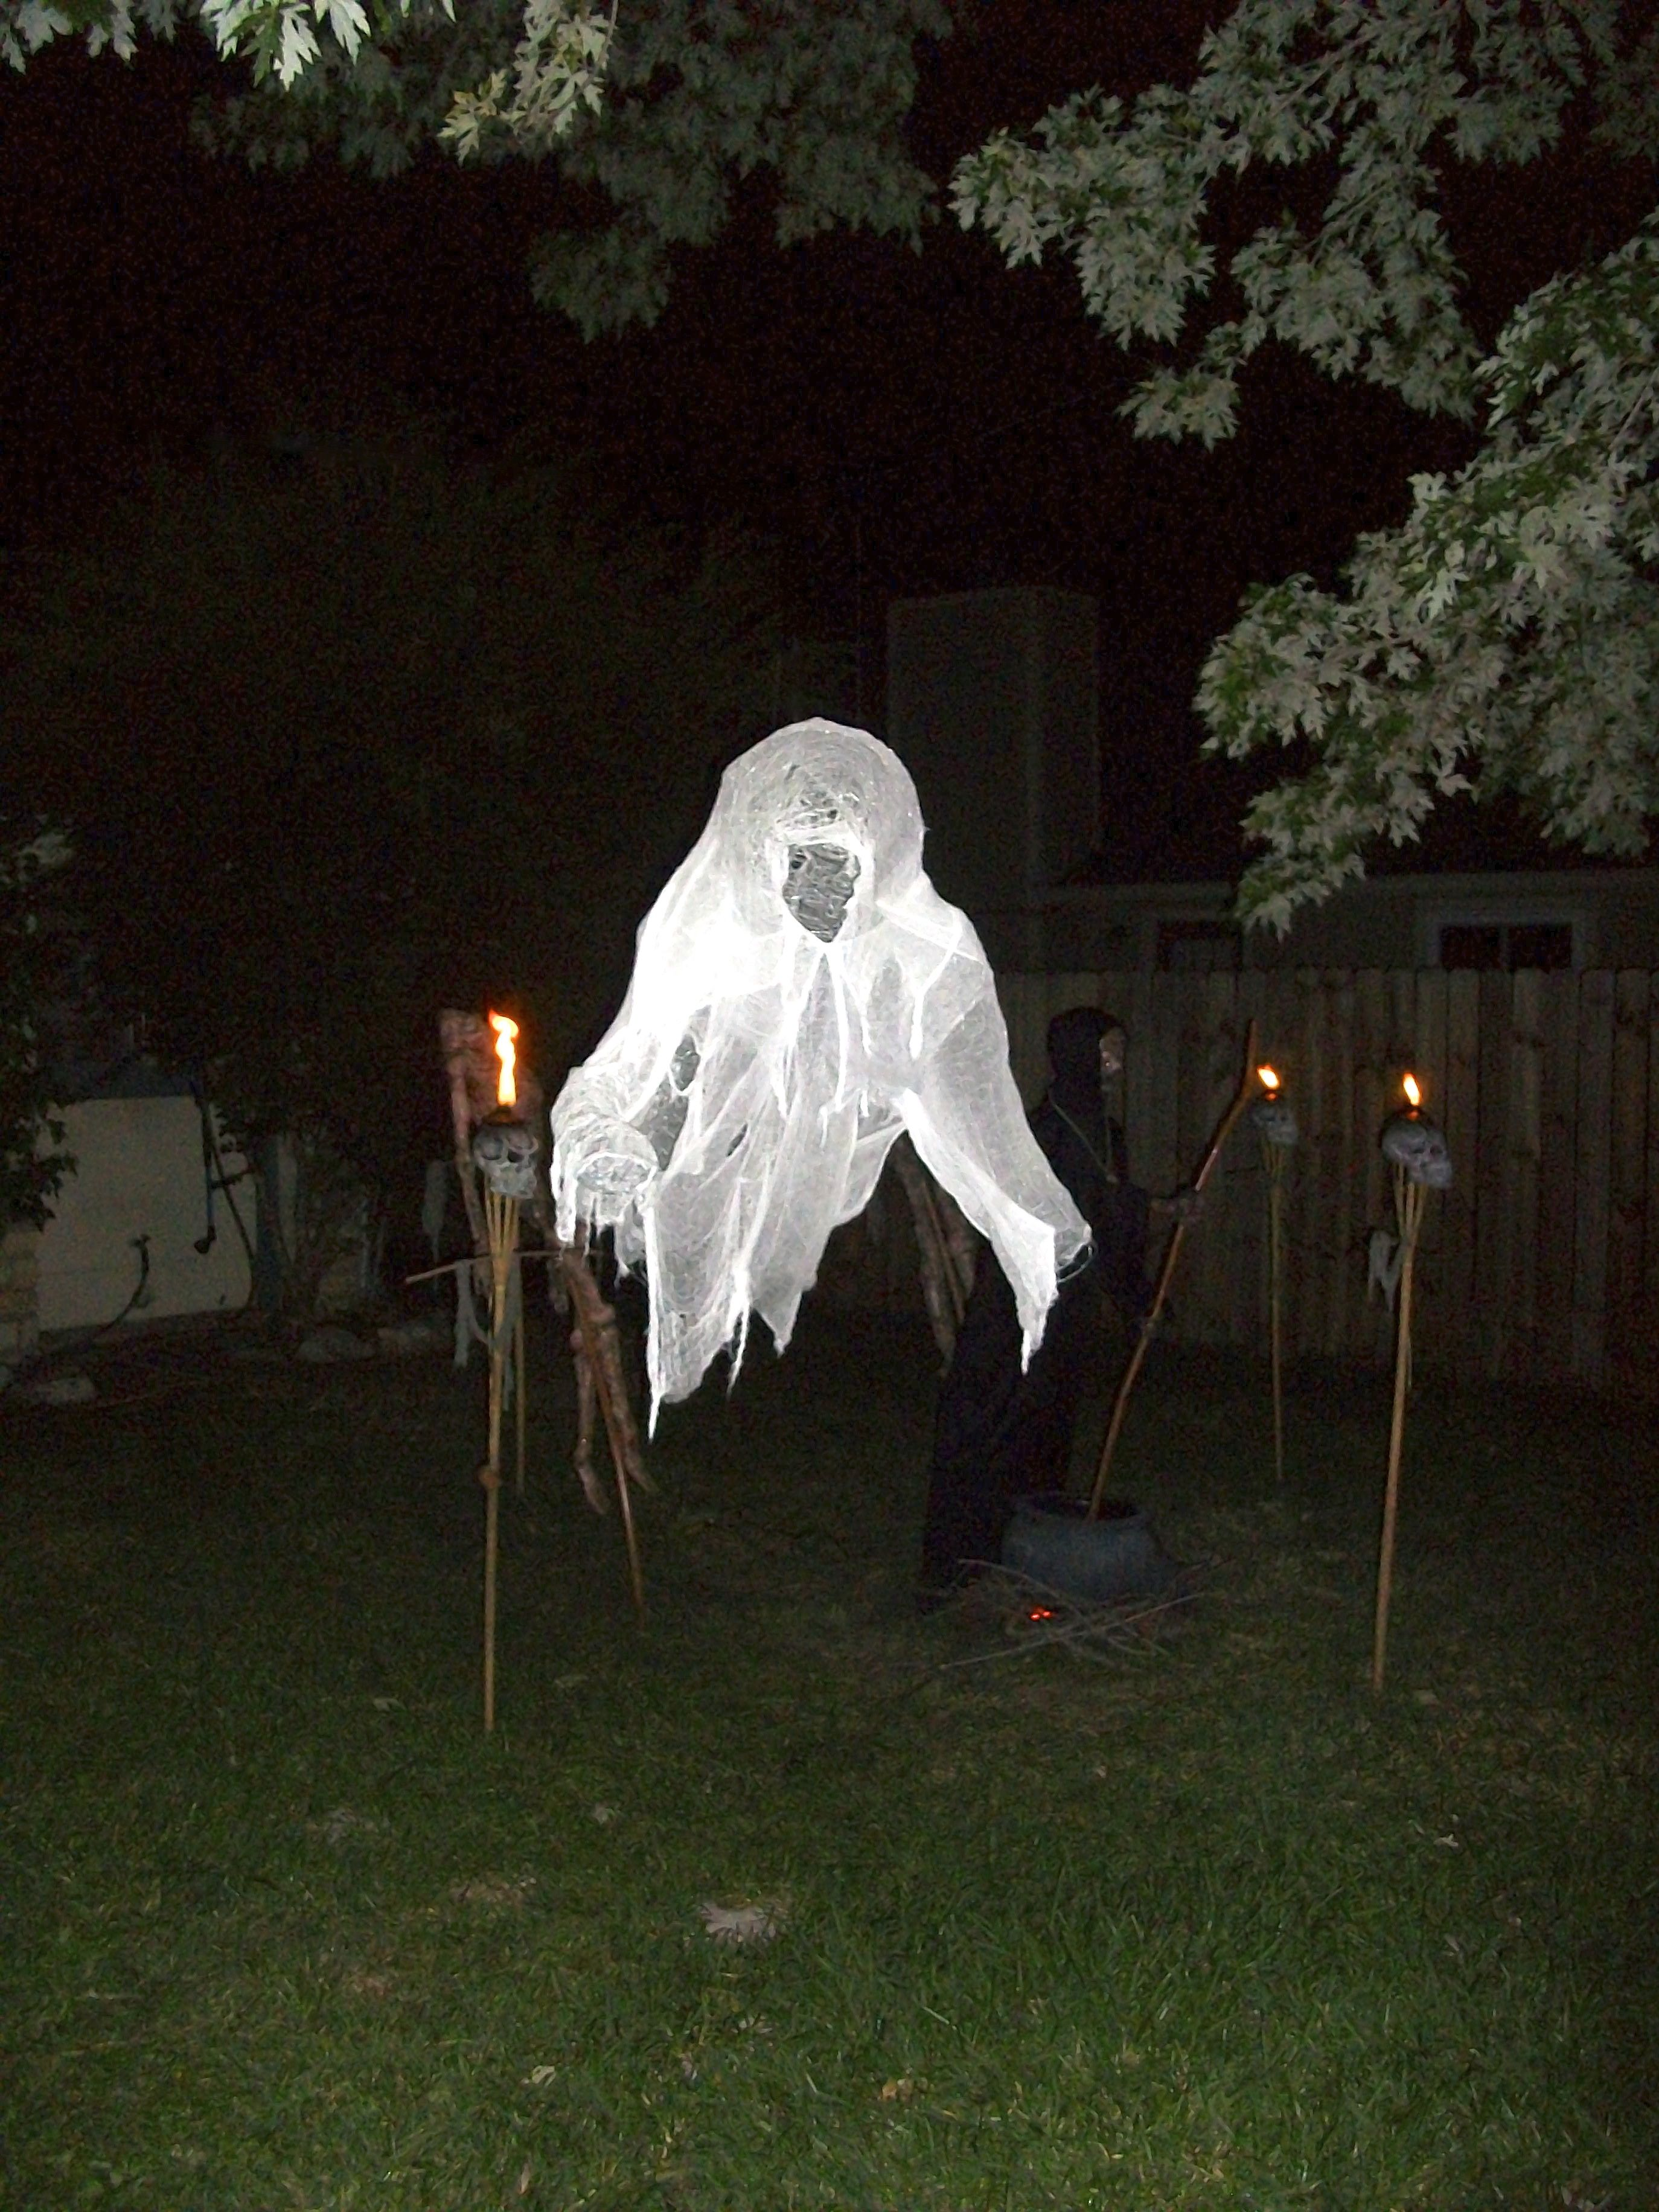 Floating ghostjust the picture but good inspiration